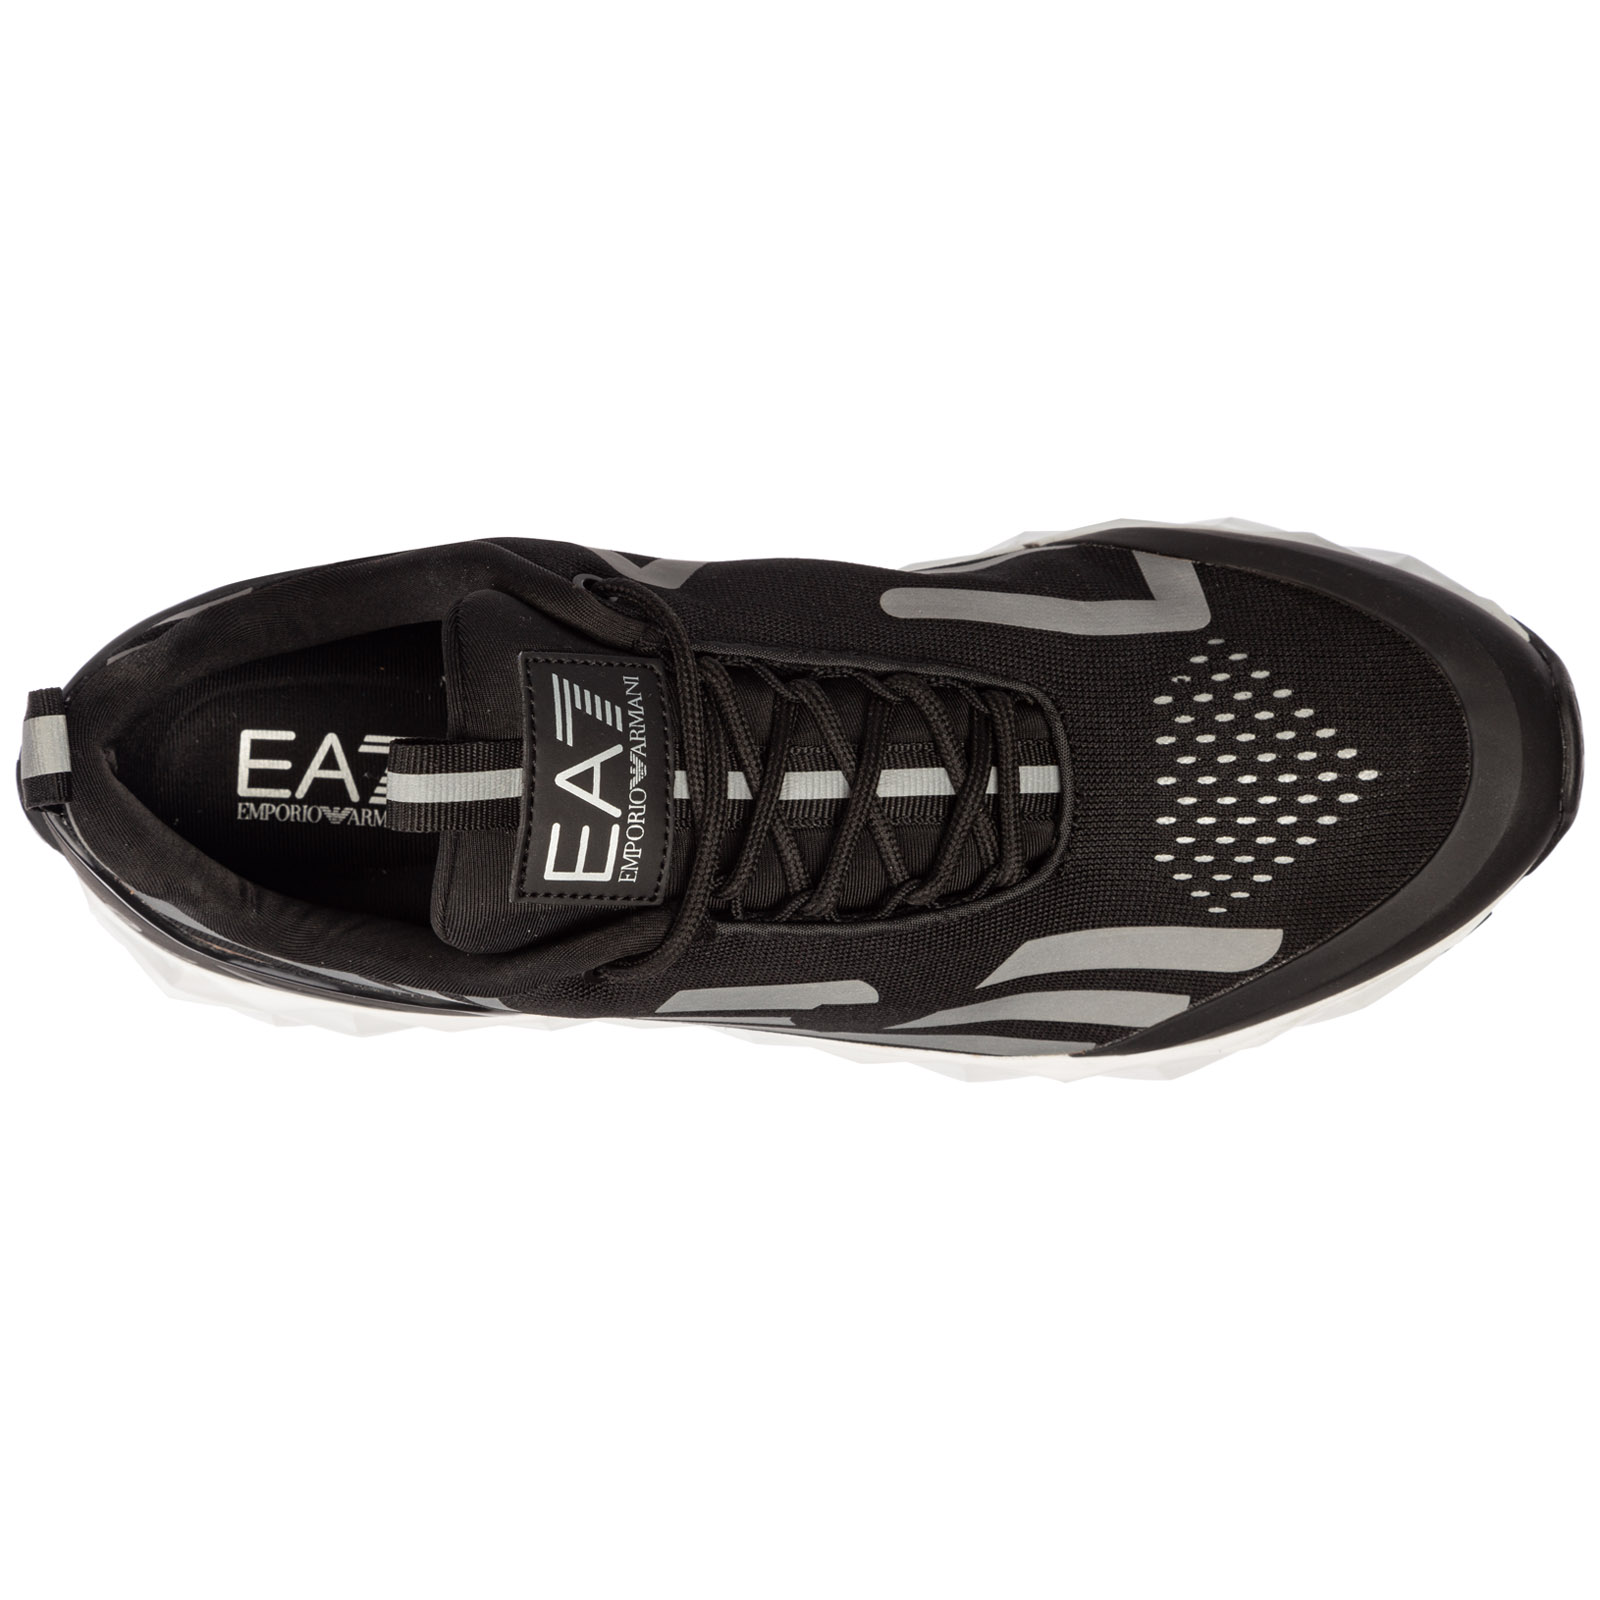 Men's shoes trainers sneakers